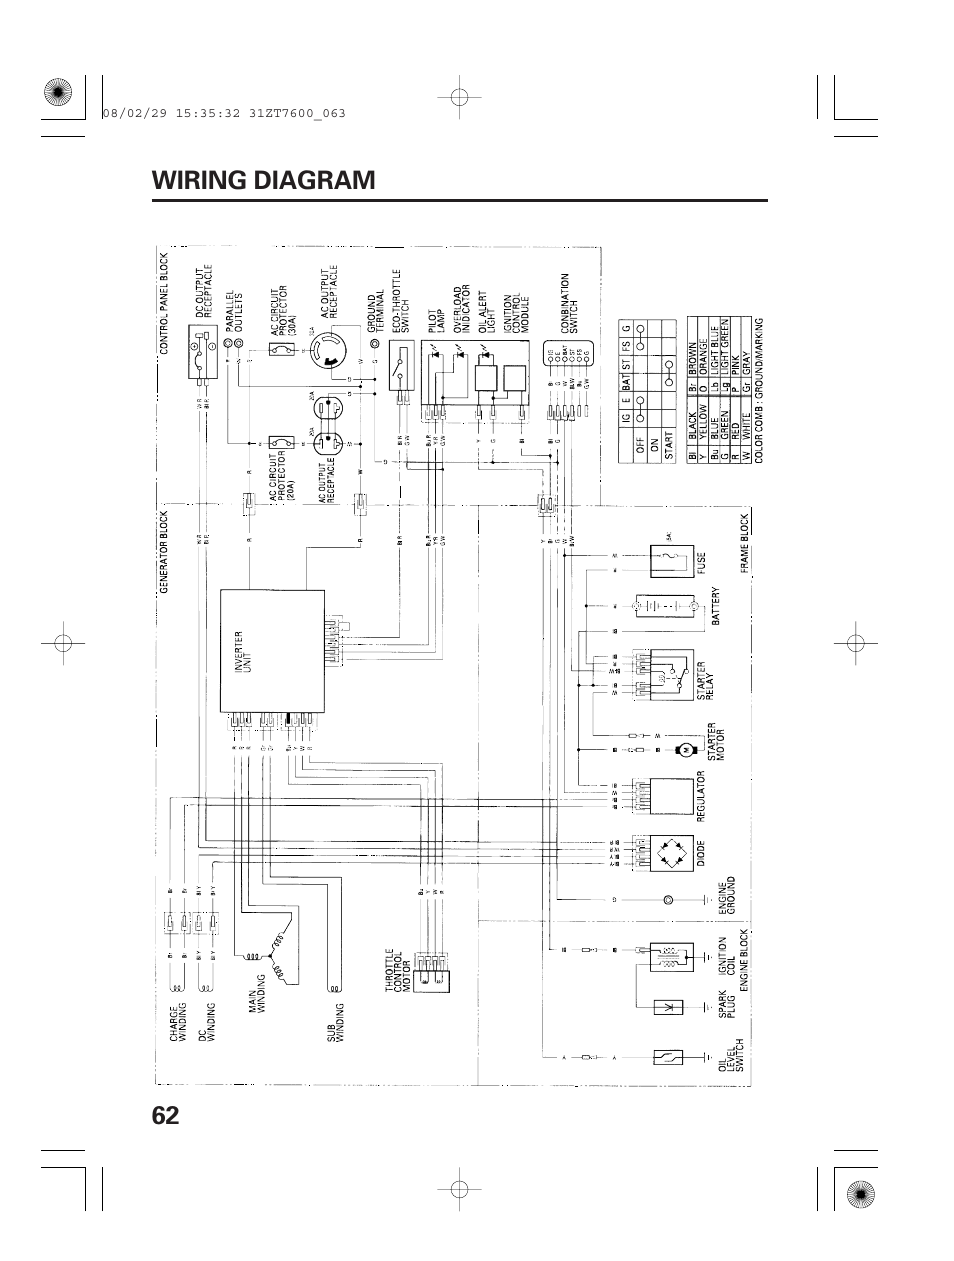 Wiring Diagram  62 Wiring Diagram